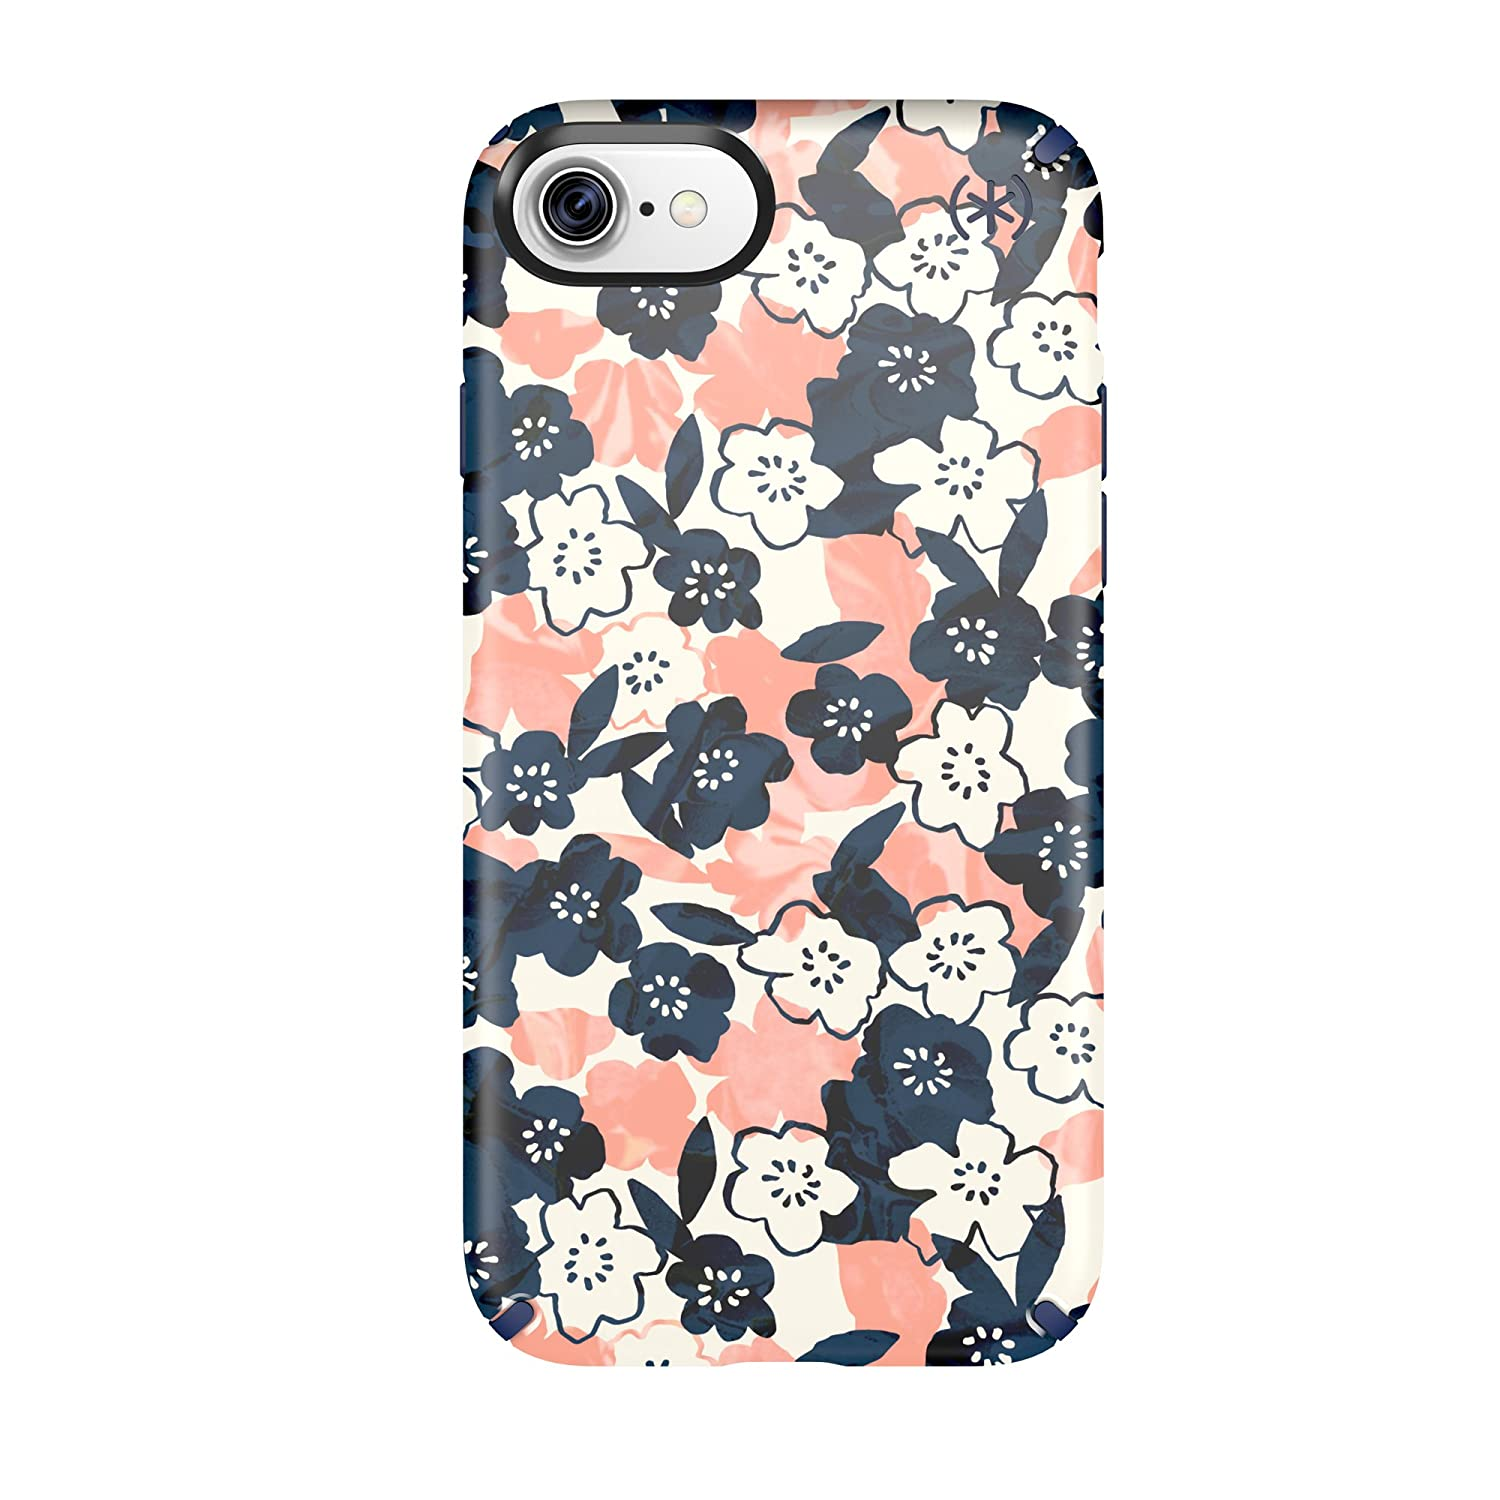 brand new c67e1 3626d Speck 79990-5760 Presidio Inked Cell Phone Case for iPhone 7 - Marbled  Floral Peach Matte/Marine Blue